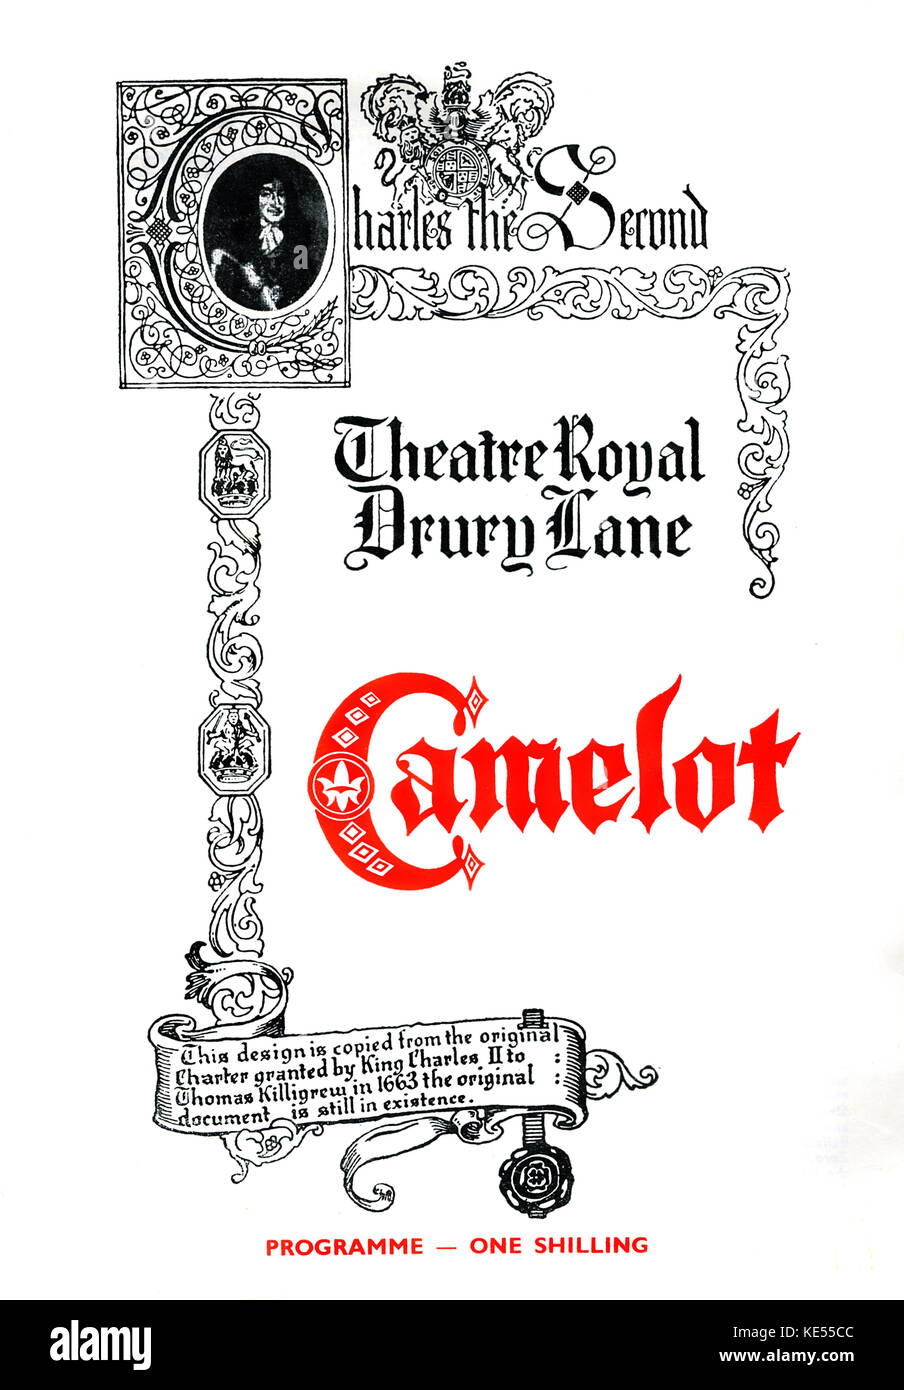 Camelot- musical at Theatre Royal Drury Lane, London. Cardew Robinson as Pellinore, Directed and Choreographed by - Stock Image